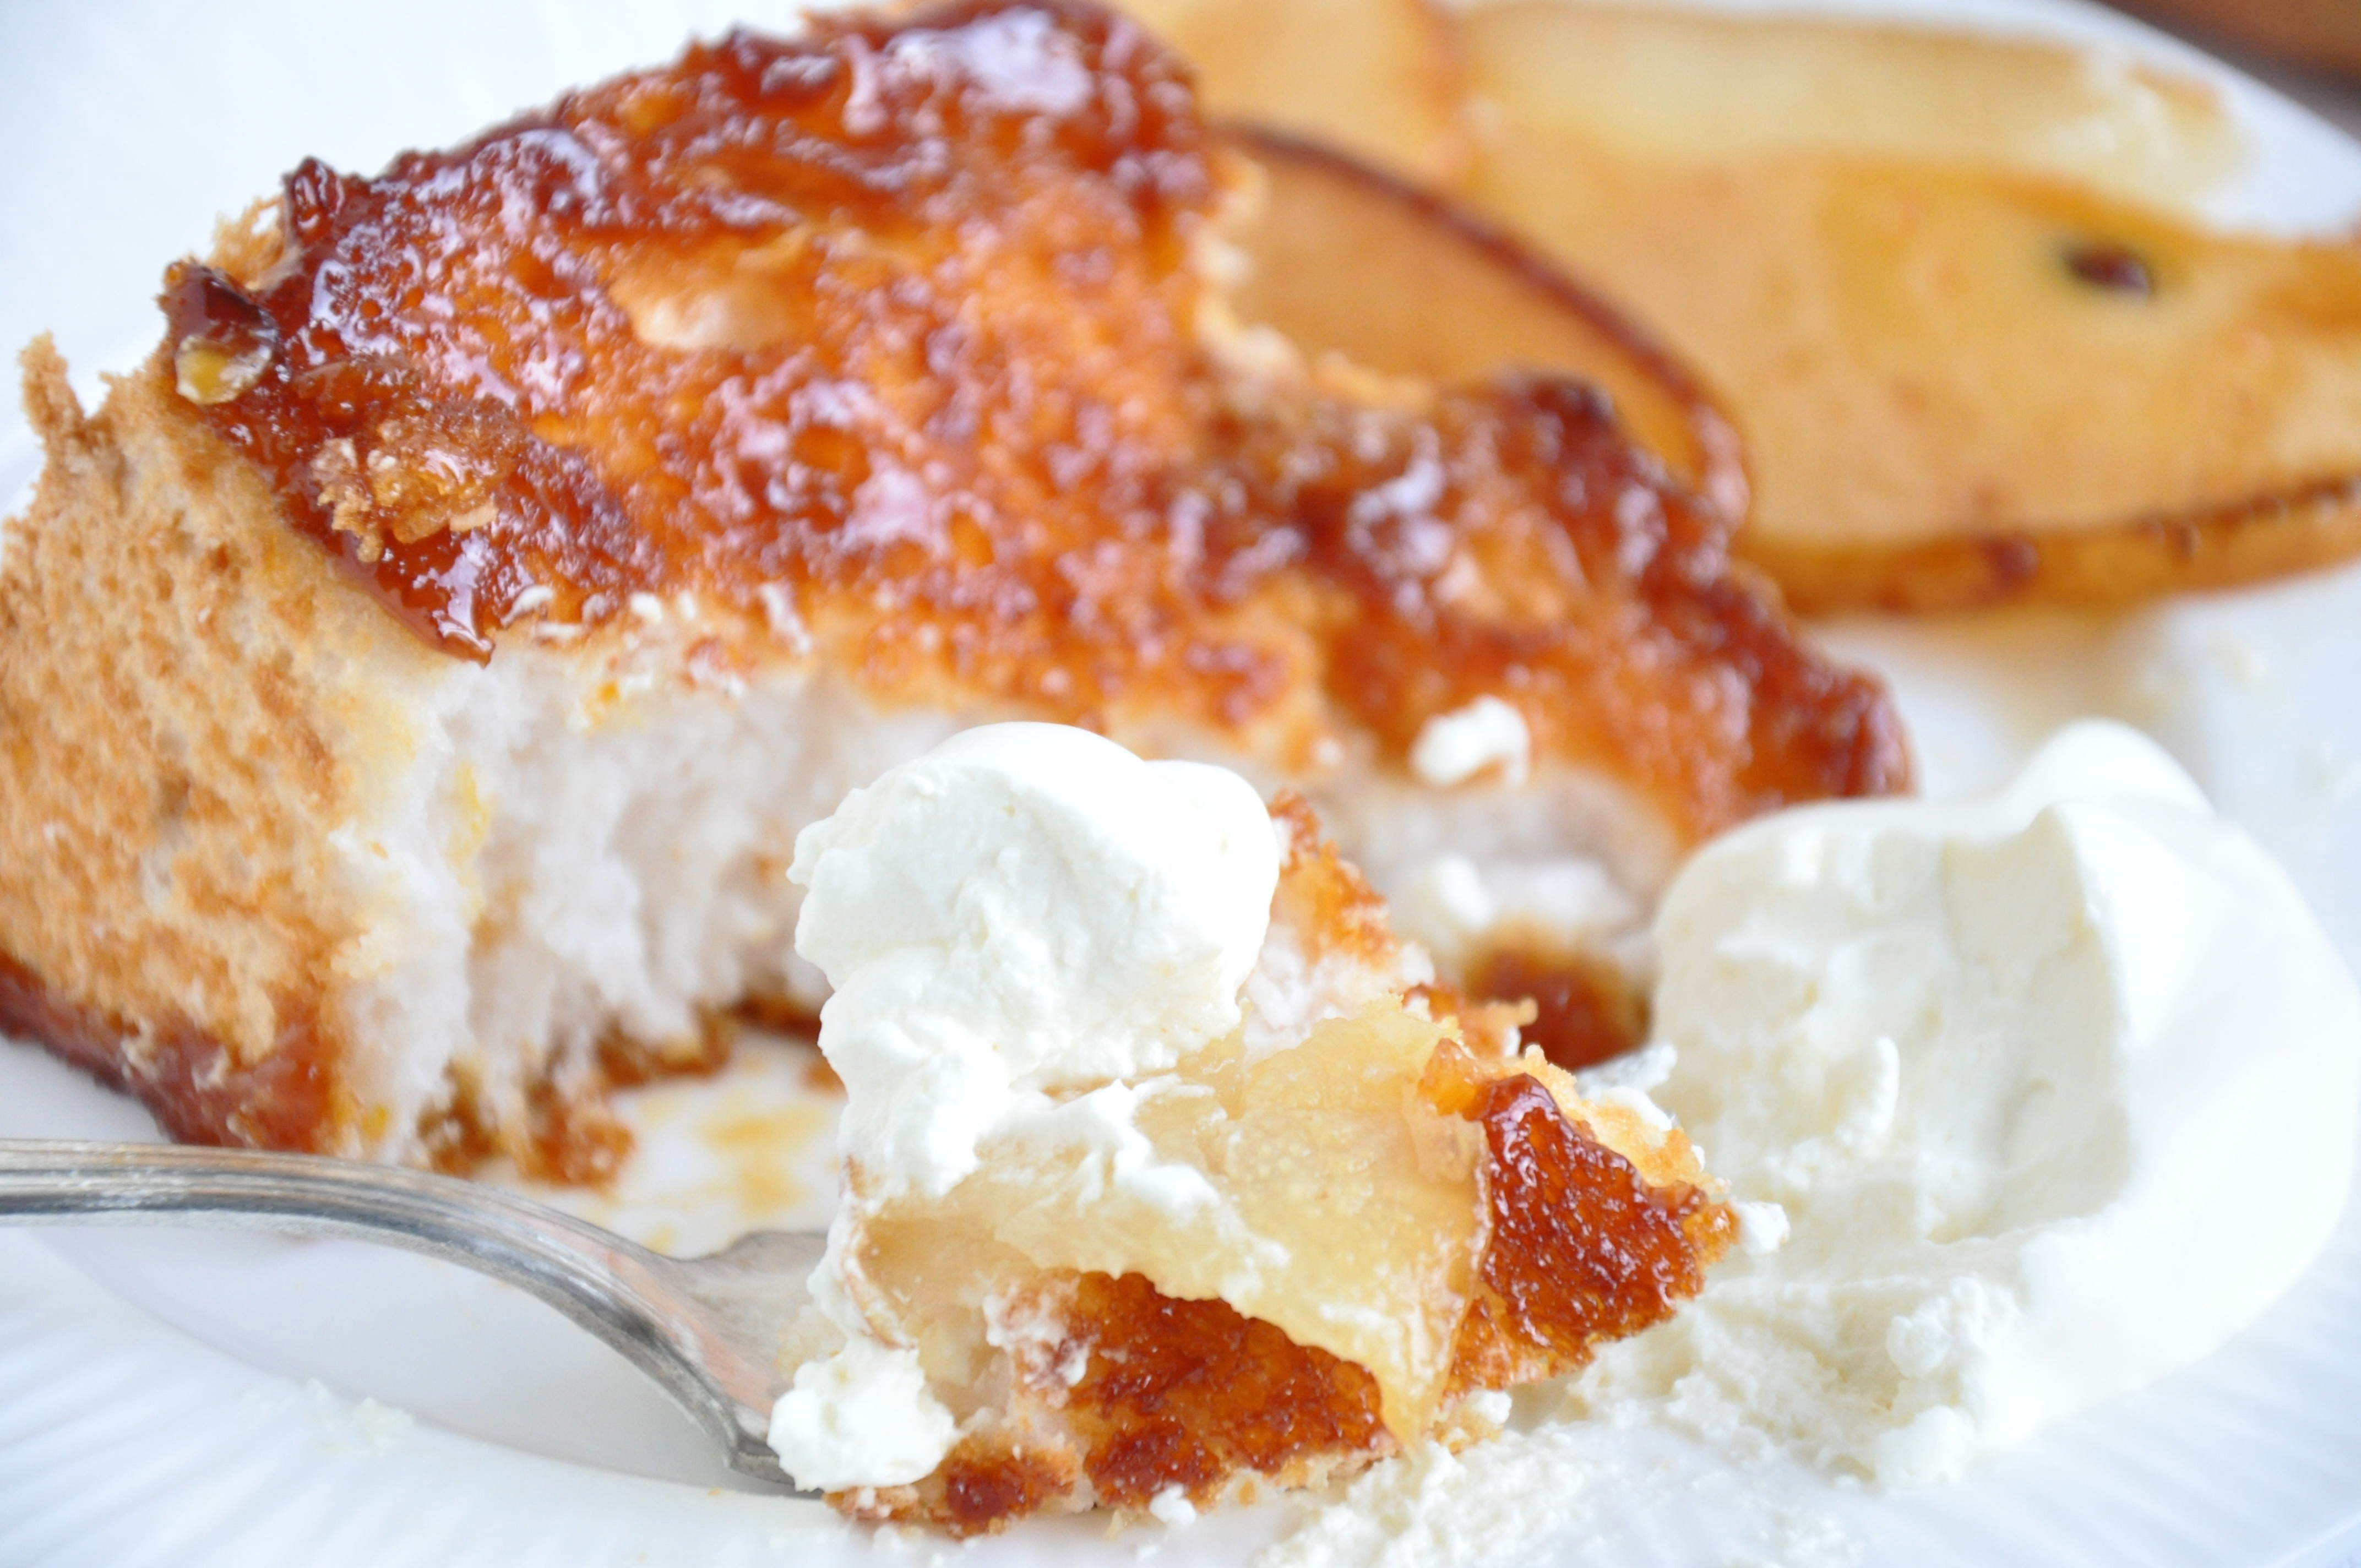 10 famous angel food cake recipe ideas 10 famous angel food cake recipe ideas lacquered angel food cake sifting focus 1 forumfinder Images